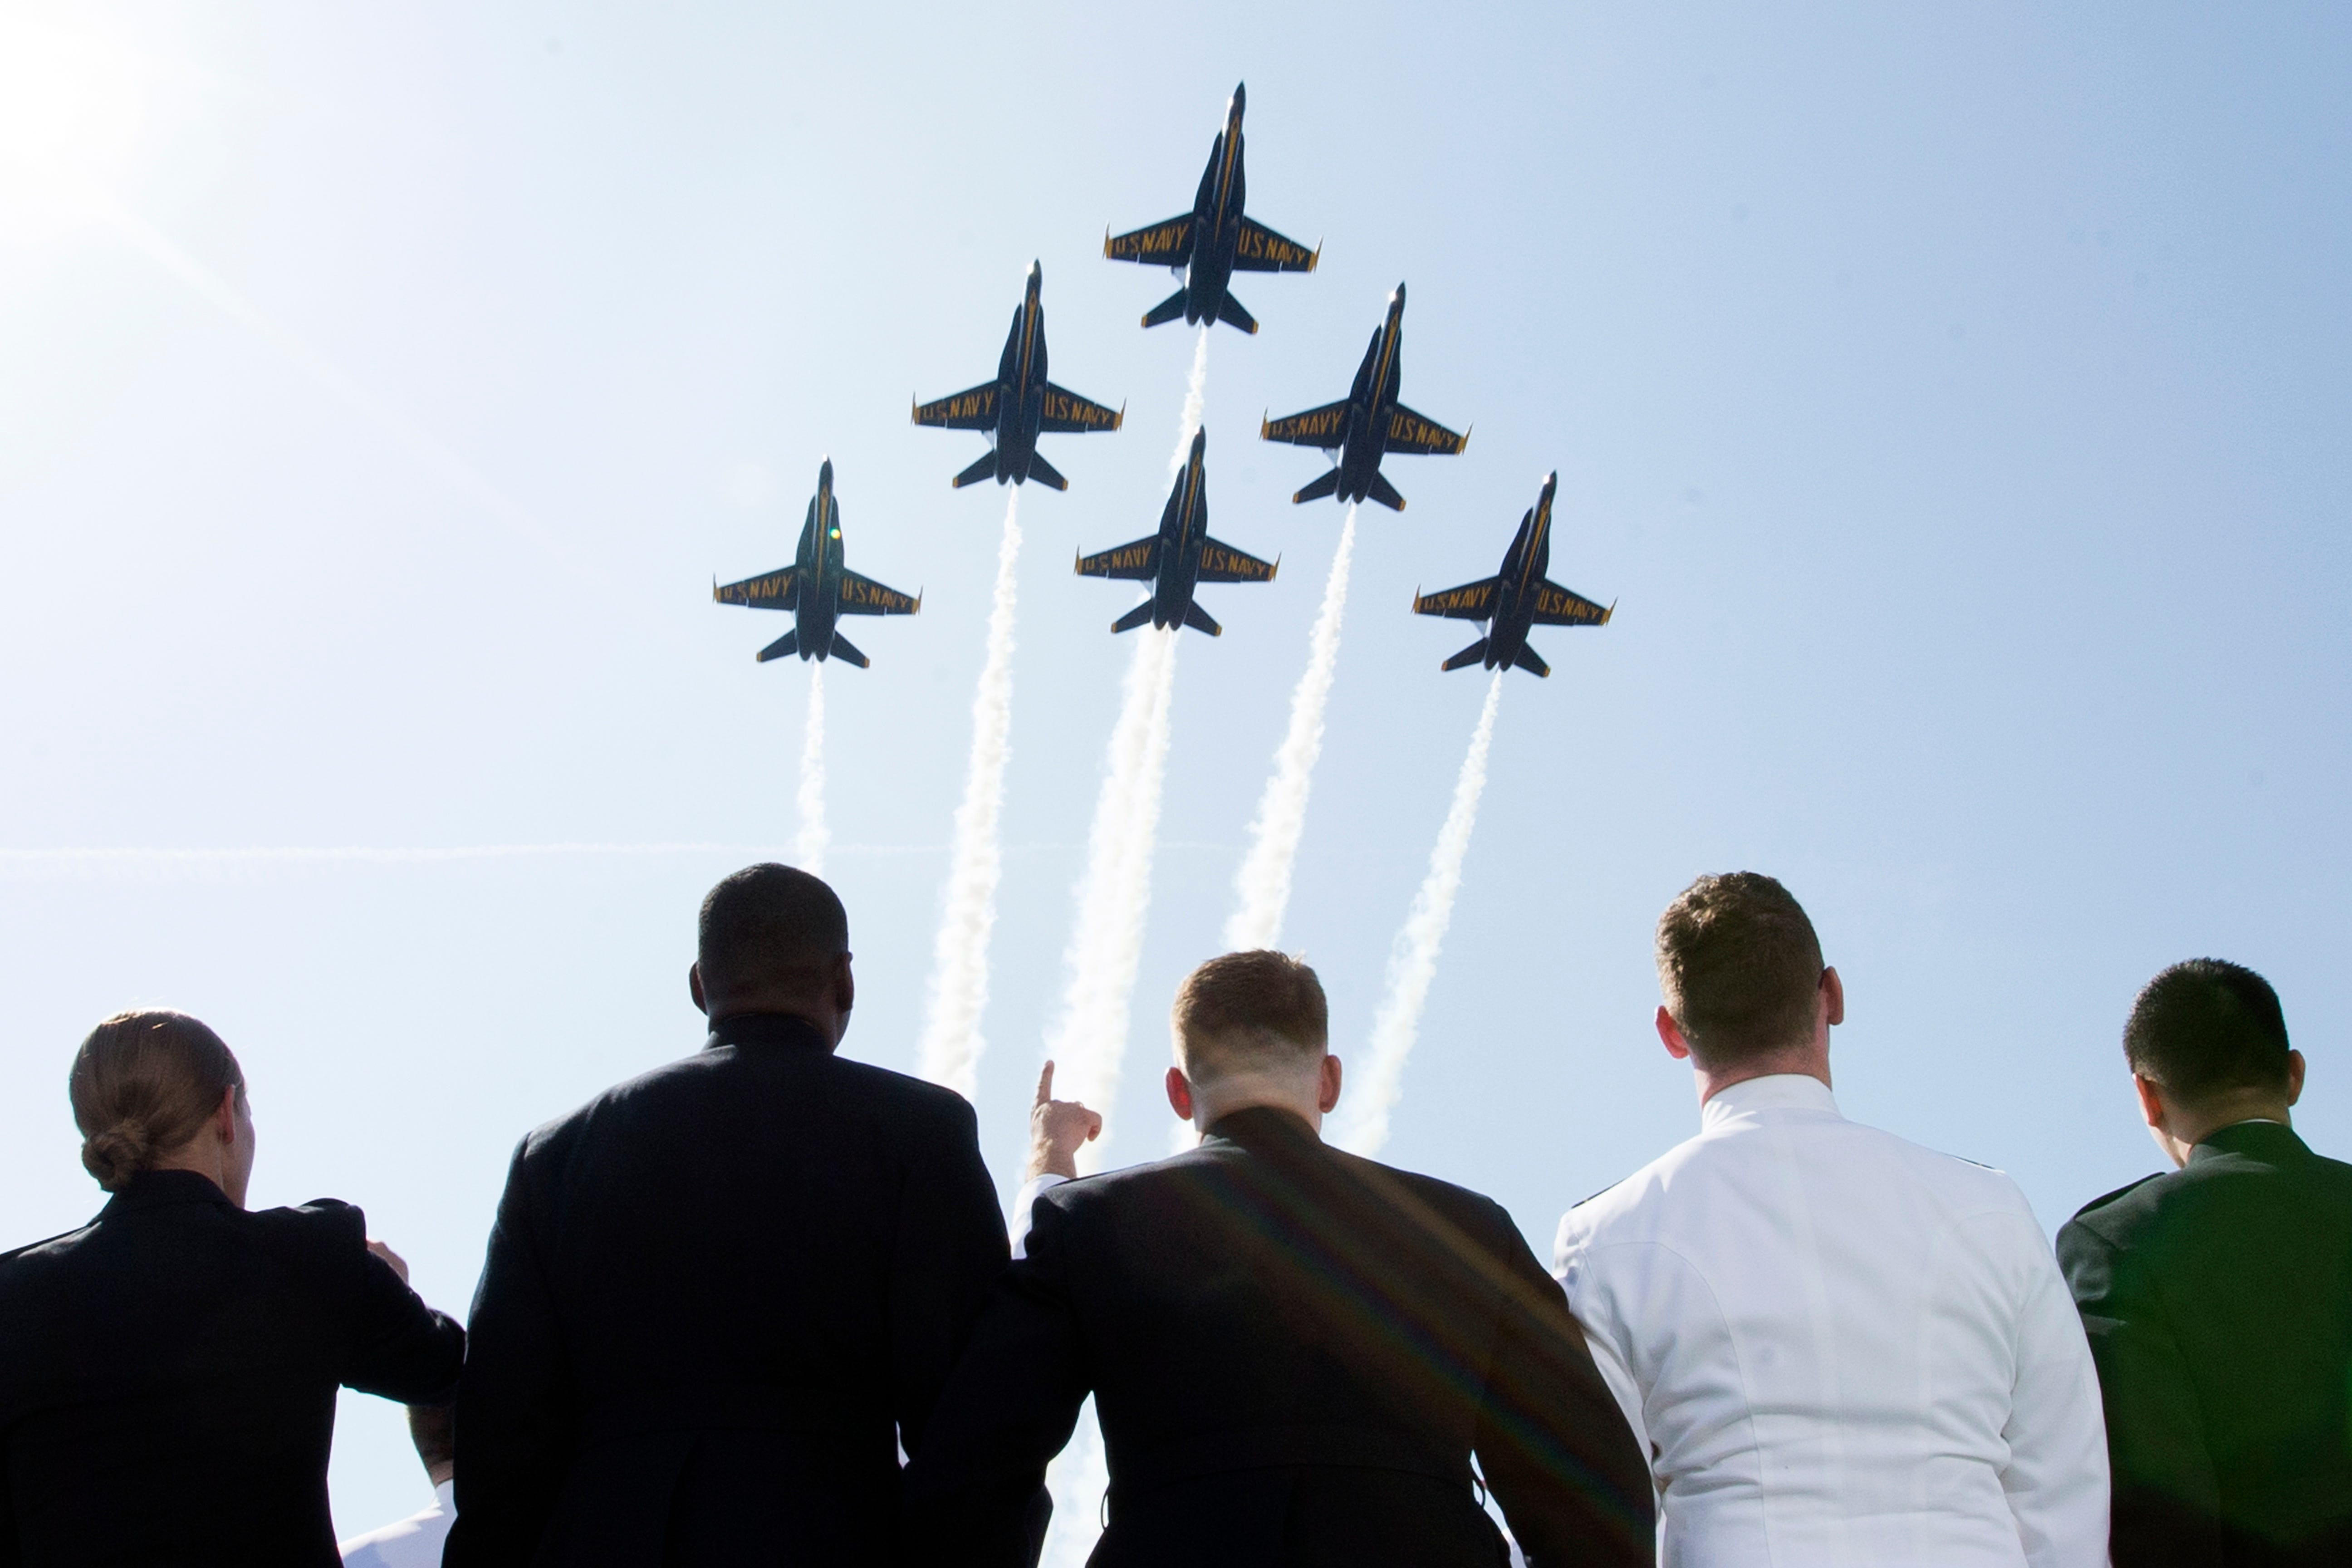 The Blue Angels fly over the the Class of 2018 midshipmen during the United States Naval Academy Graduation and Commissioning Ceremony, at Navy-Marine Corps Memorial Stadium in Annapolis, Md.